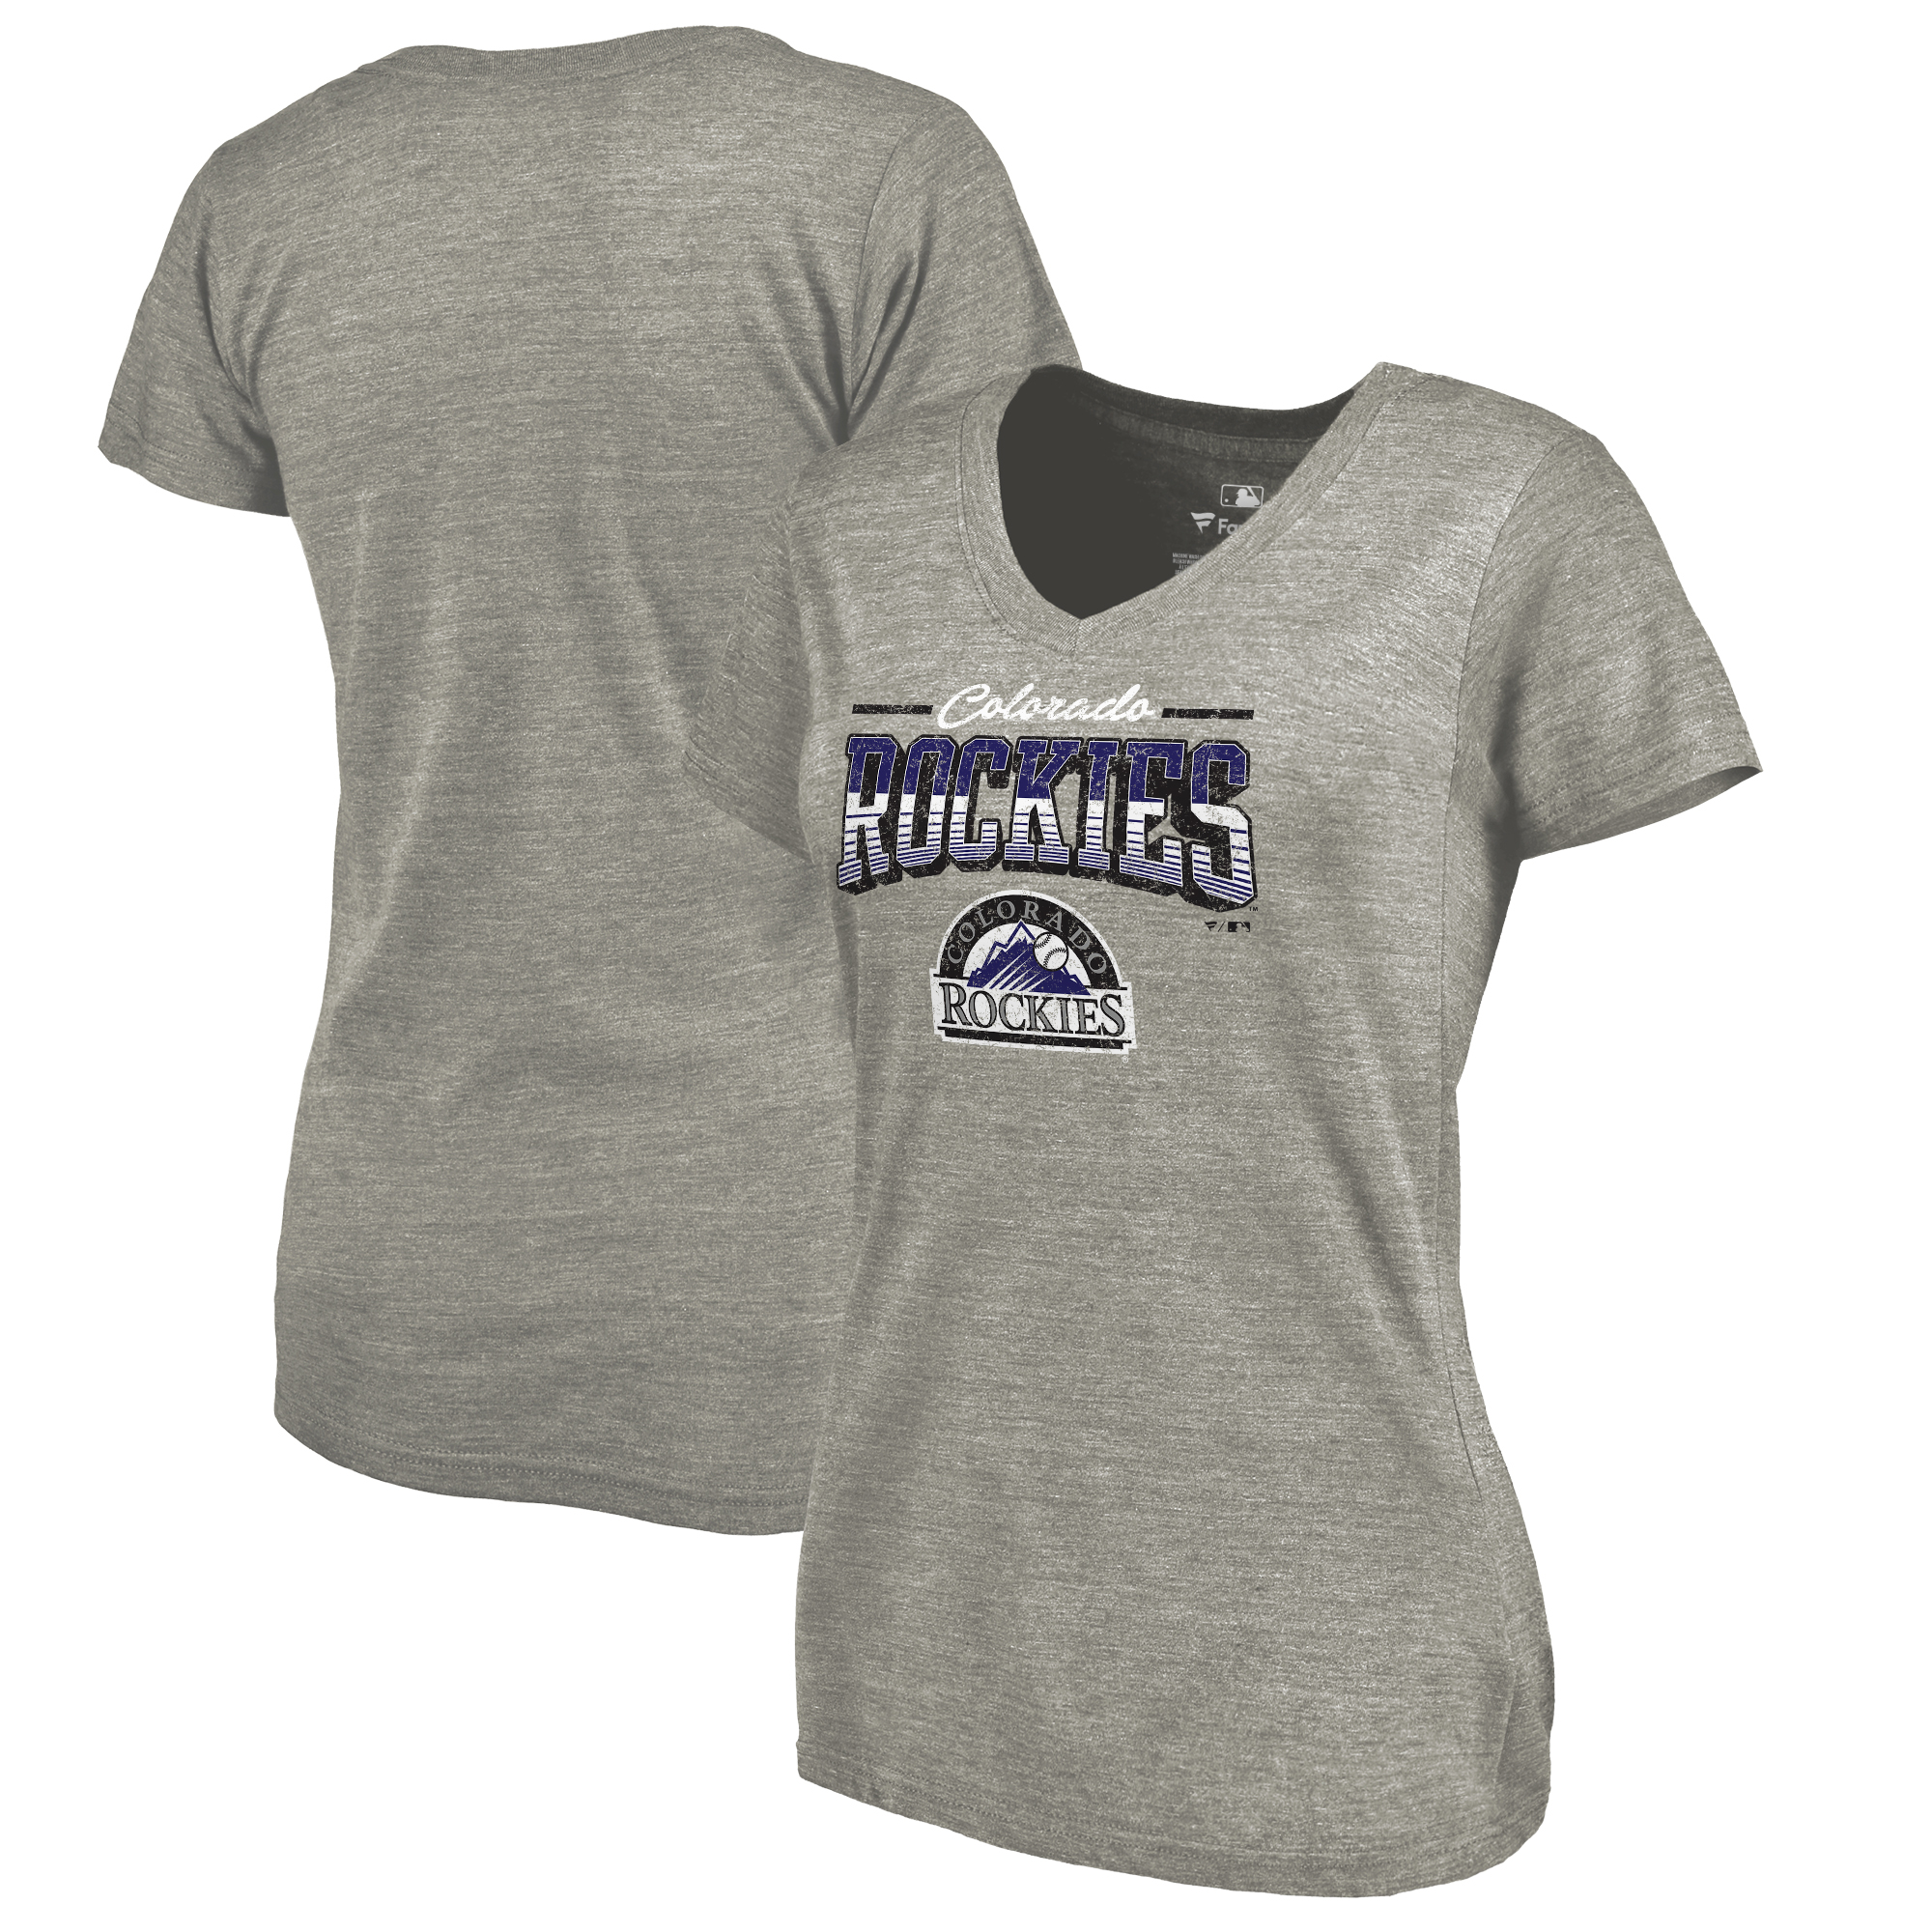 Colorado Rockies Fanatics Branded Women's Cooperstown Collection Season Ticket Tri-Blend V-Neck T-Shirt - Heathered Gray